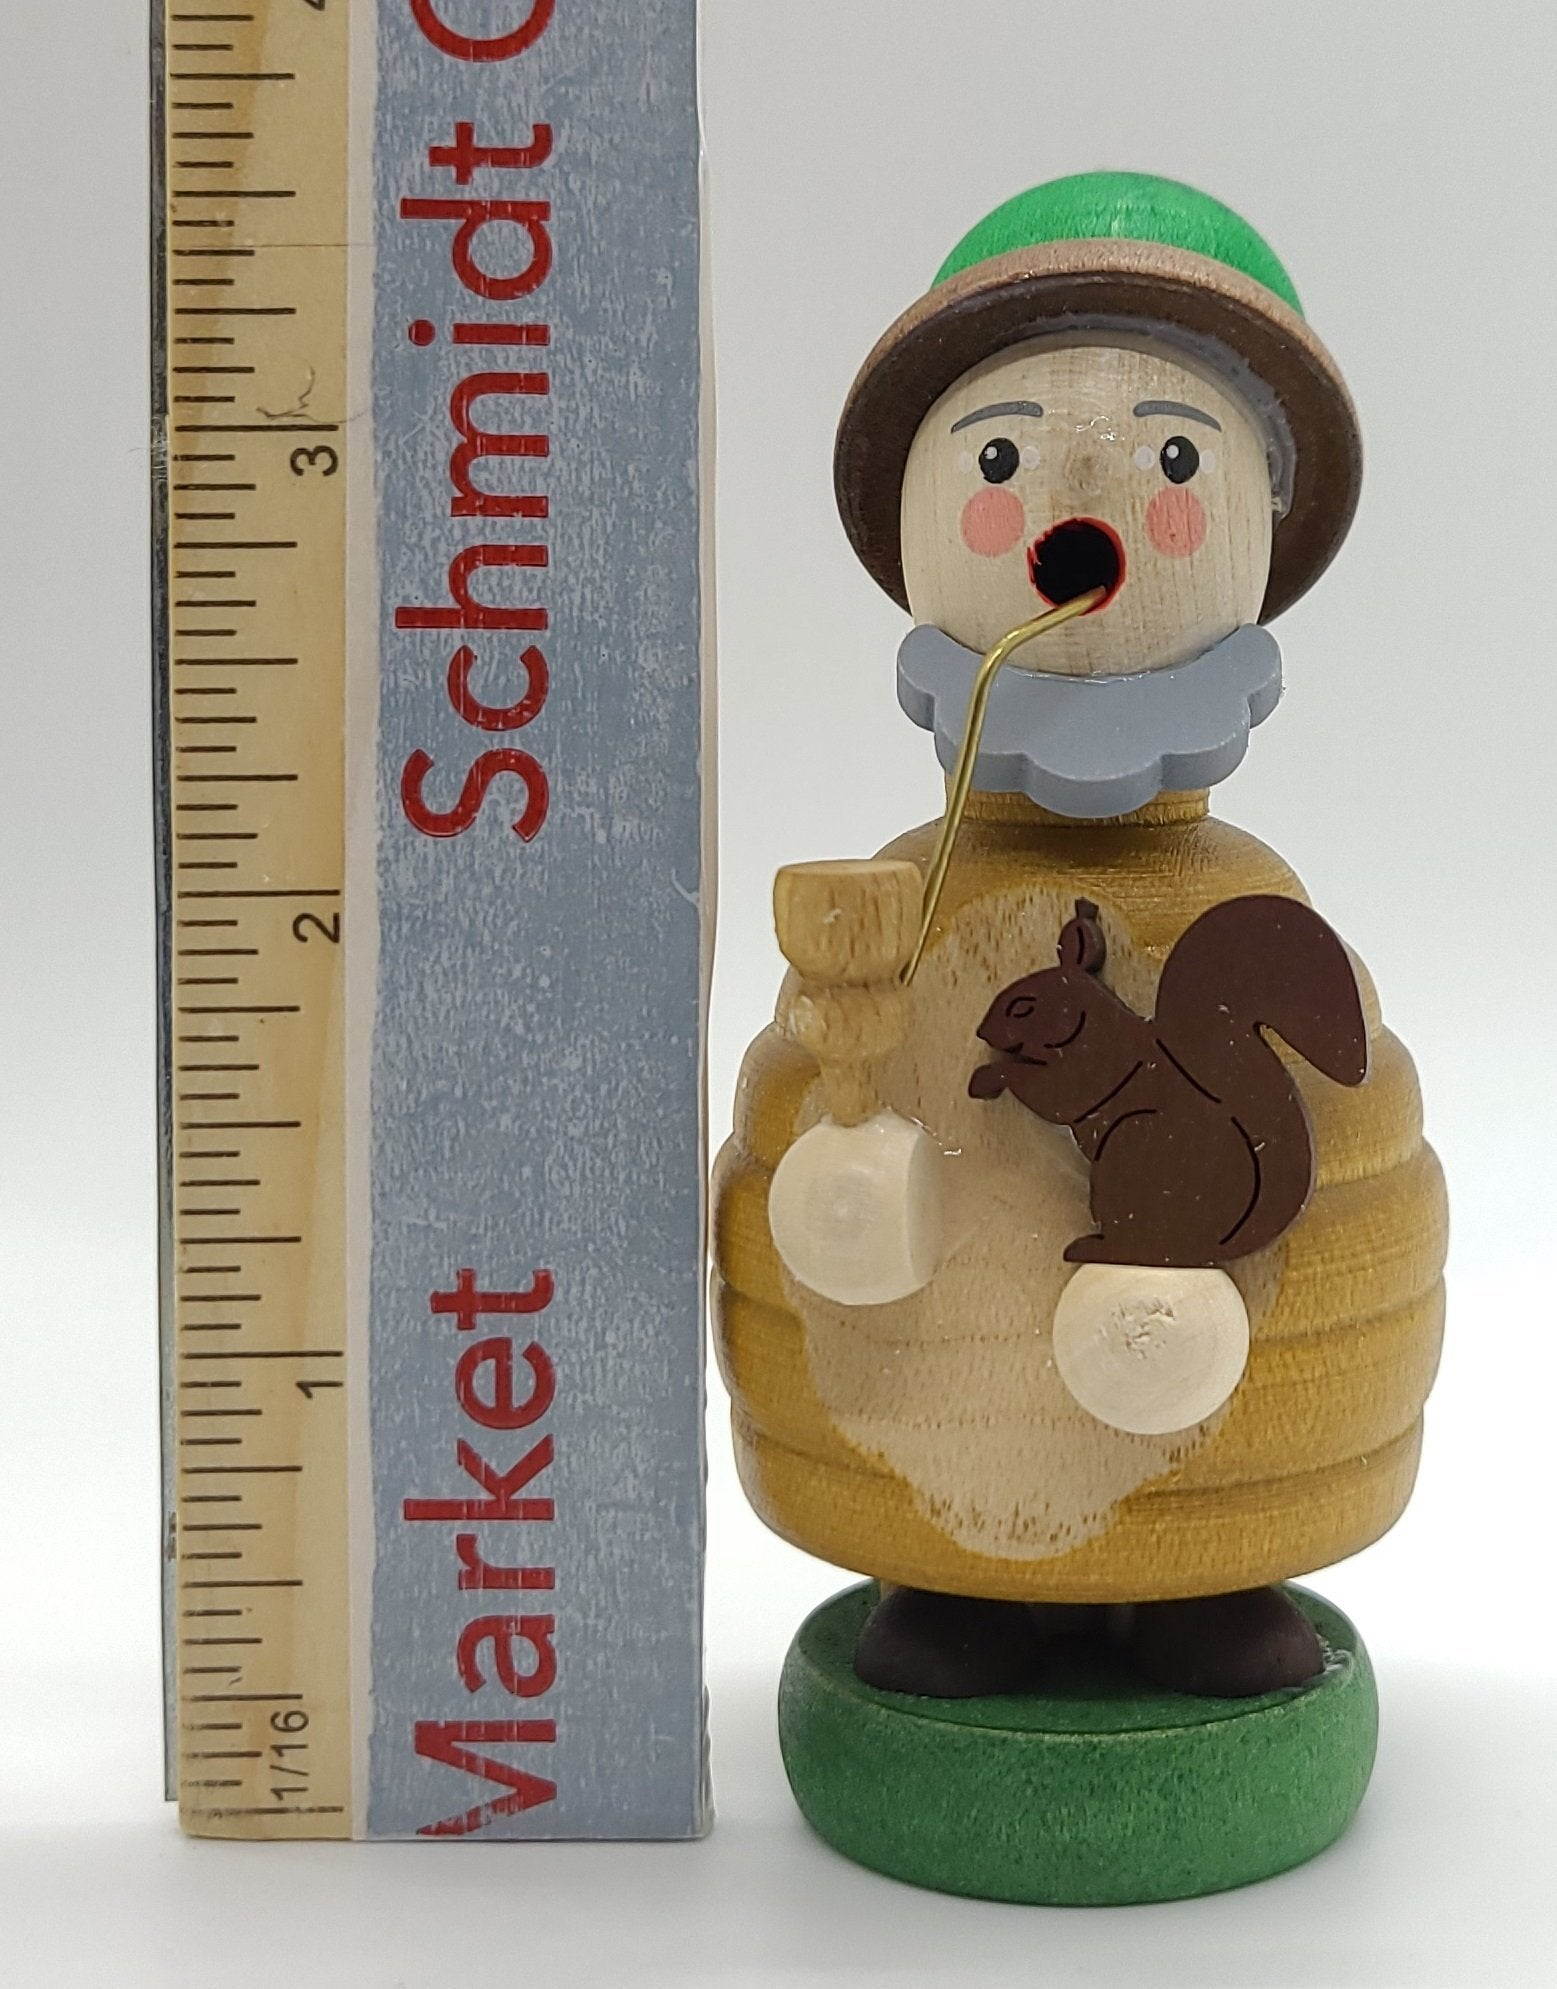 Handmade Mini-Smoker Dwarf na may ardilya - Schmidt Christmas Market Christmas Decoration